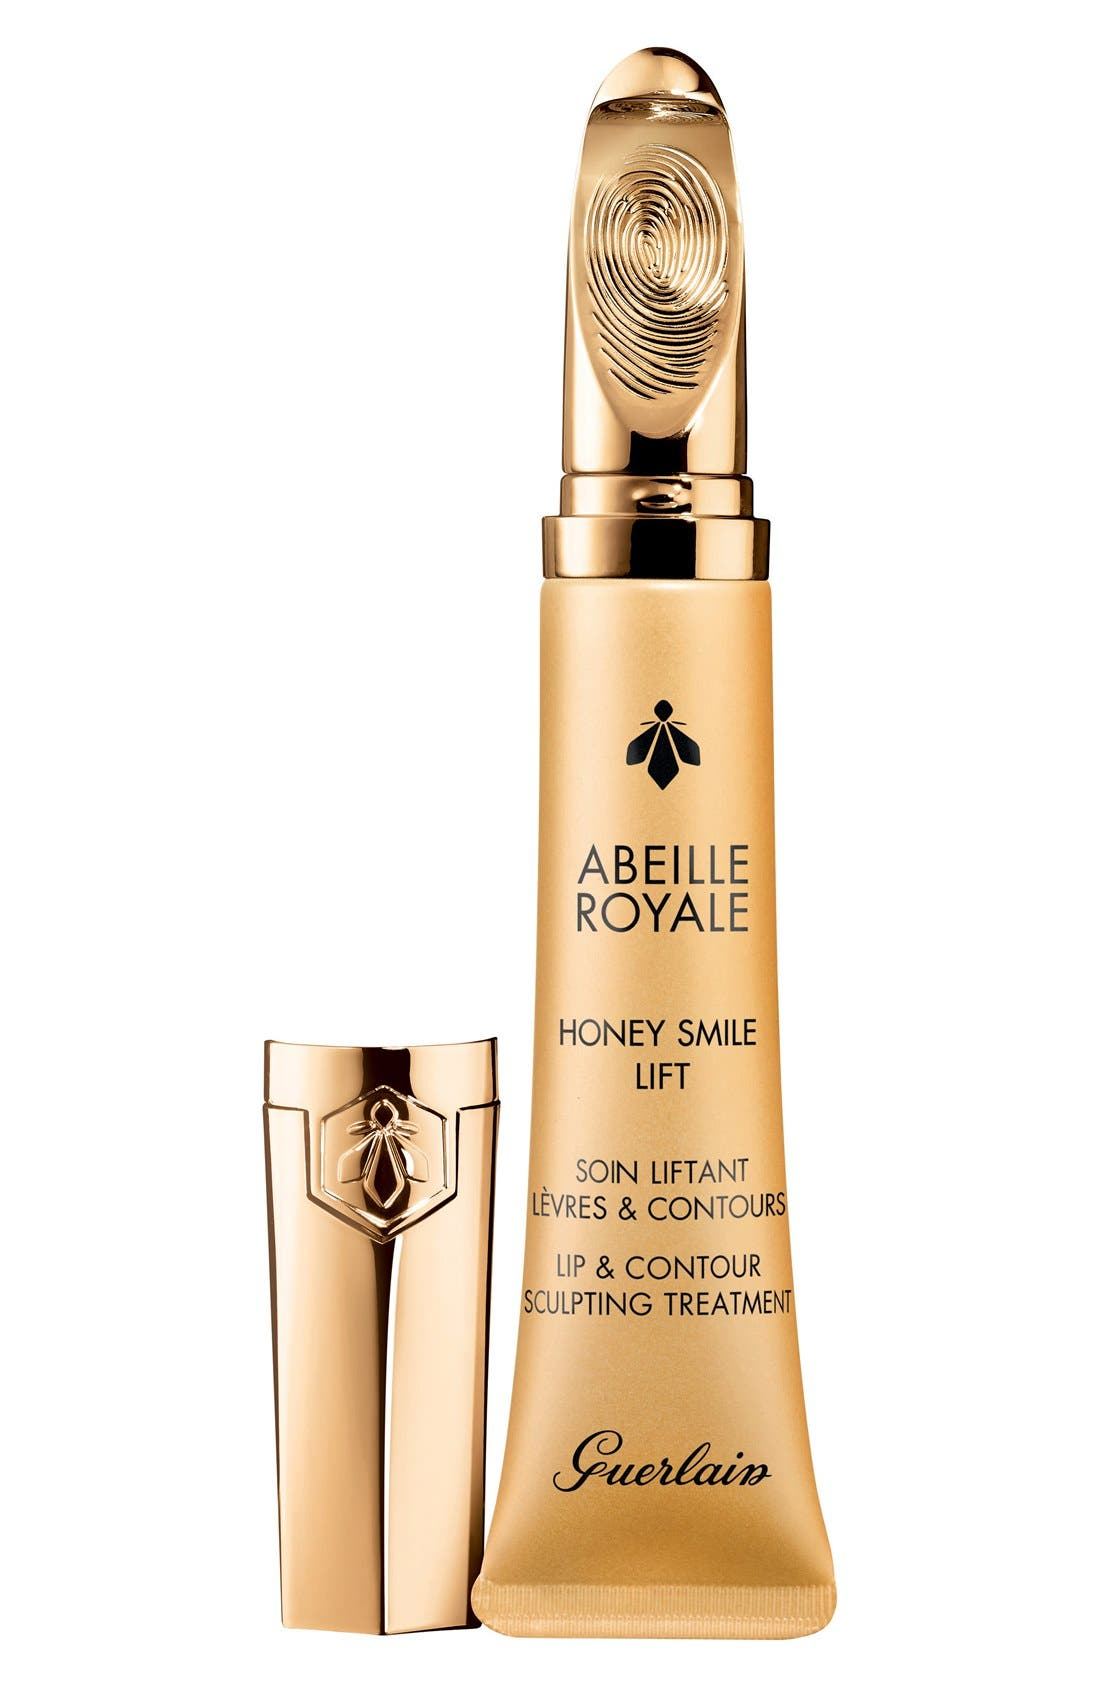 Guerlain 'Abeille Royale - Honey Smile Lift' Lip & Contour Sculpting Treatment